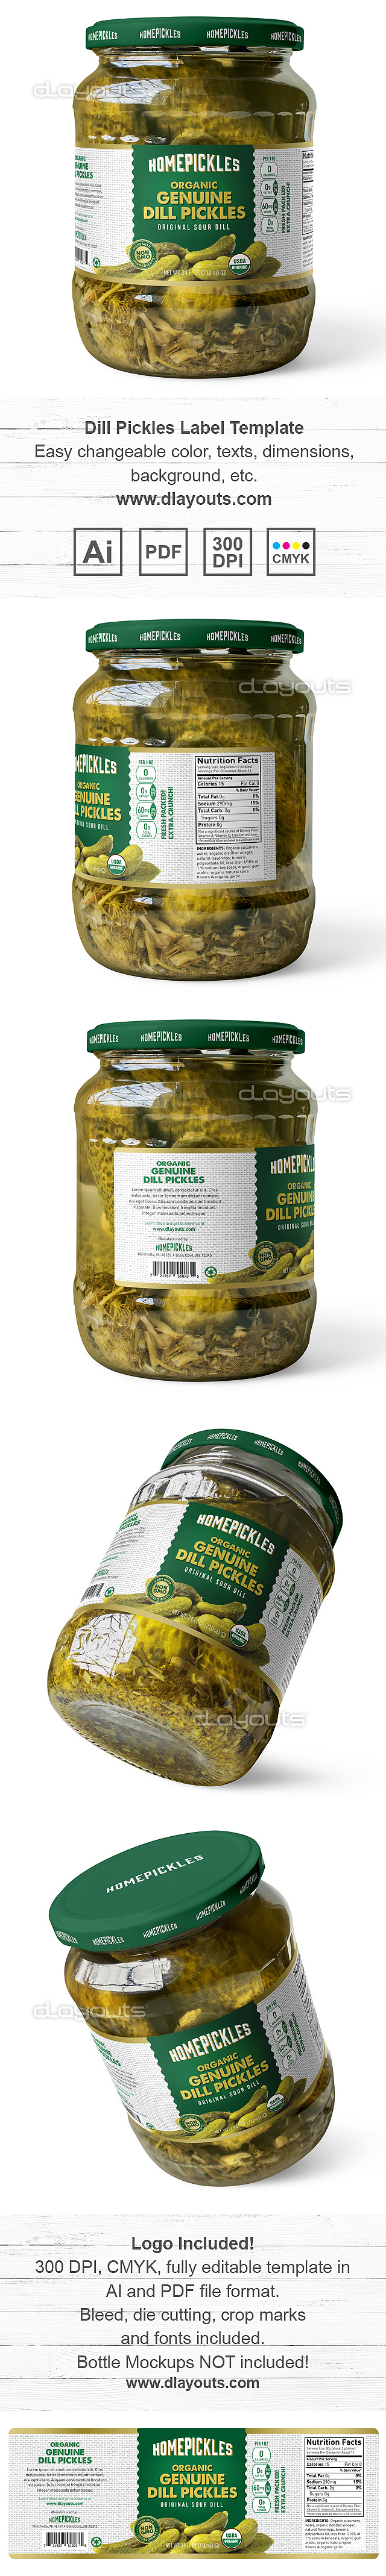 Organic Dill Pickles Label Template